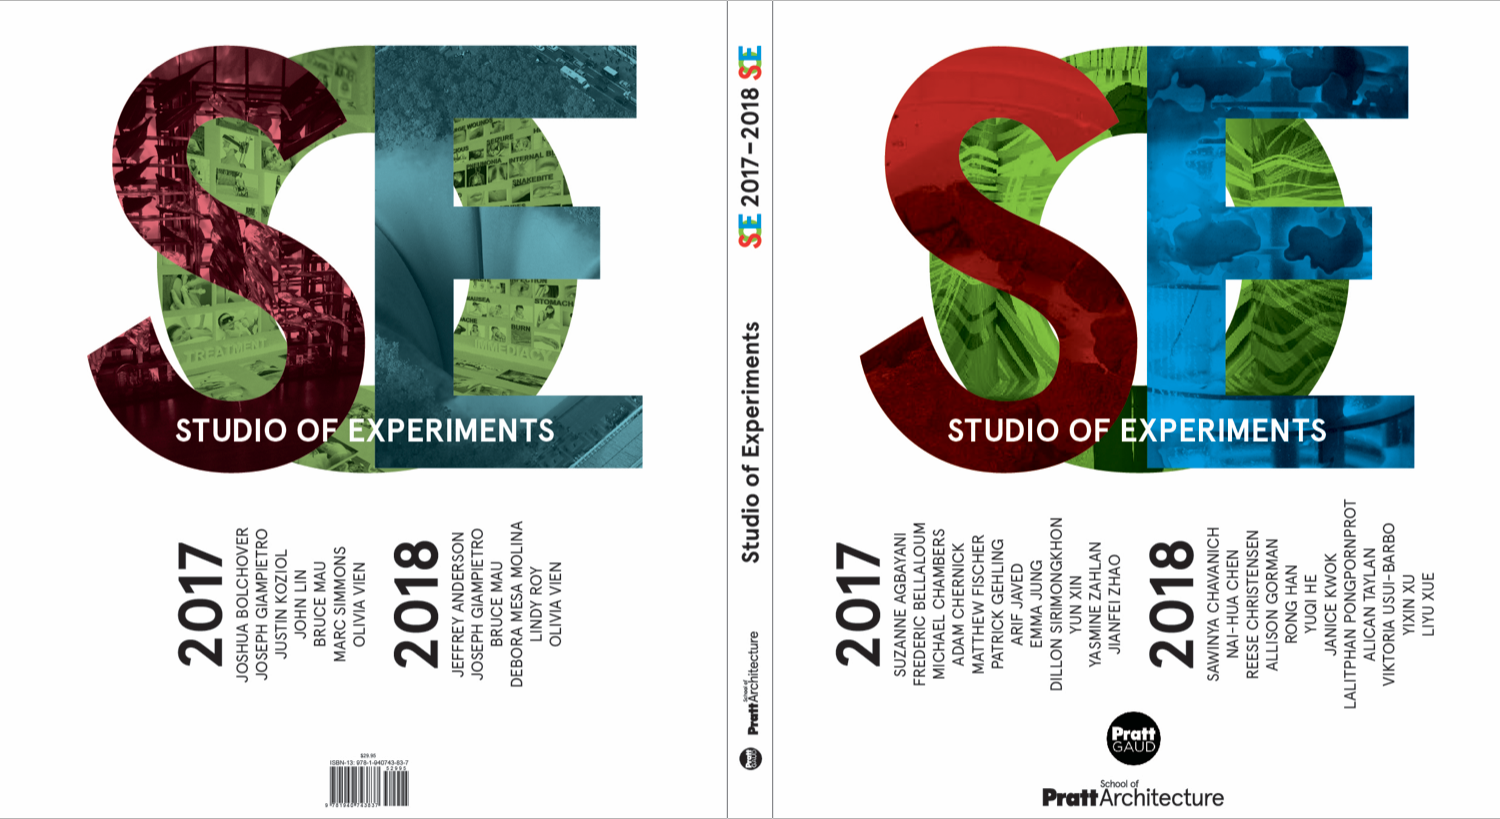 Studio of Experiments